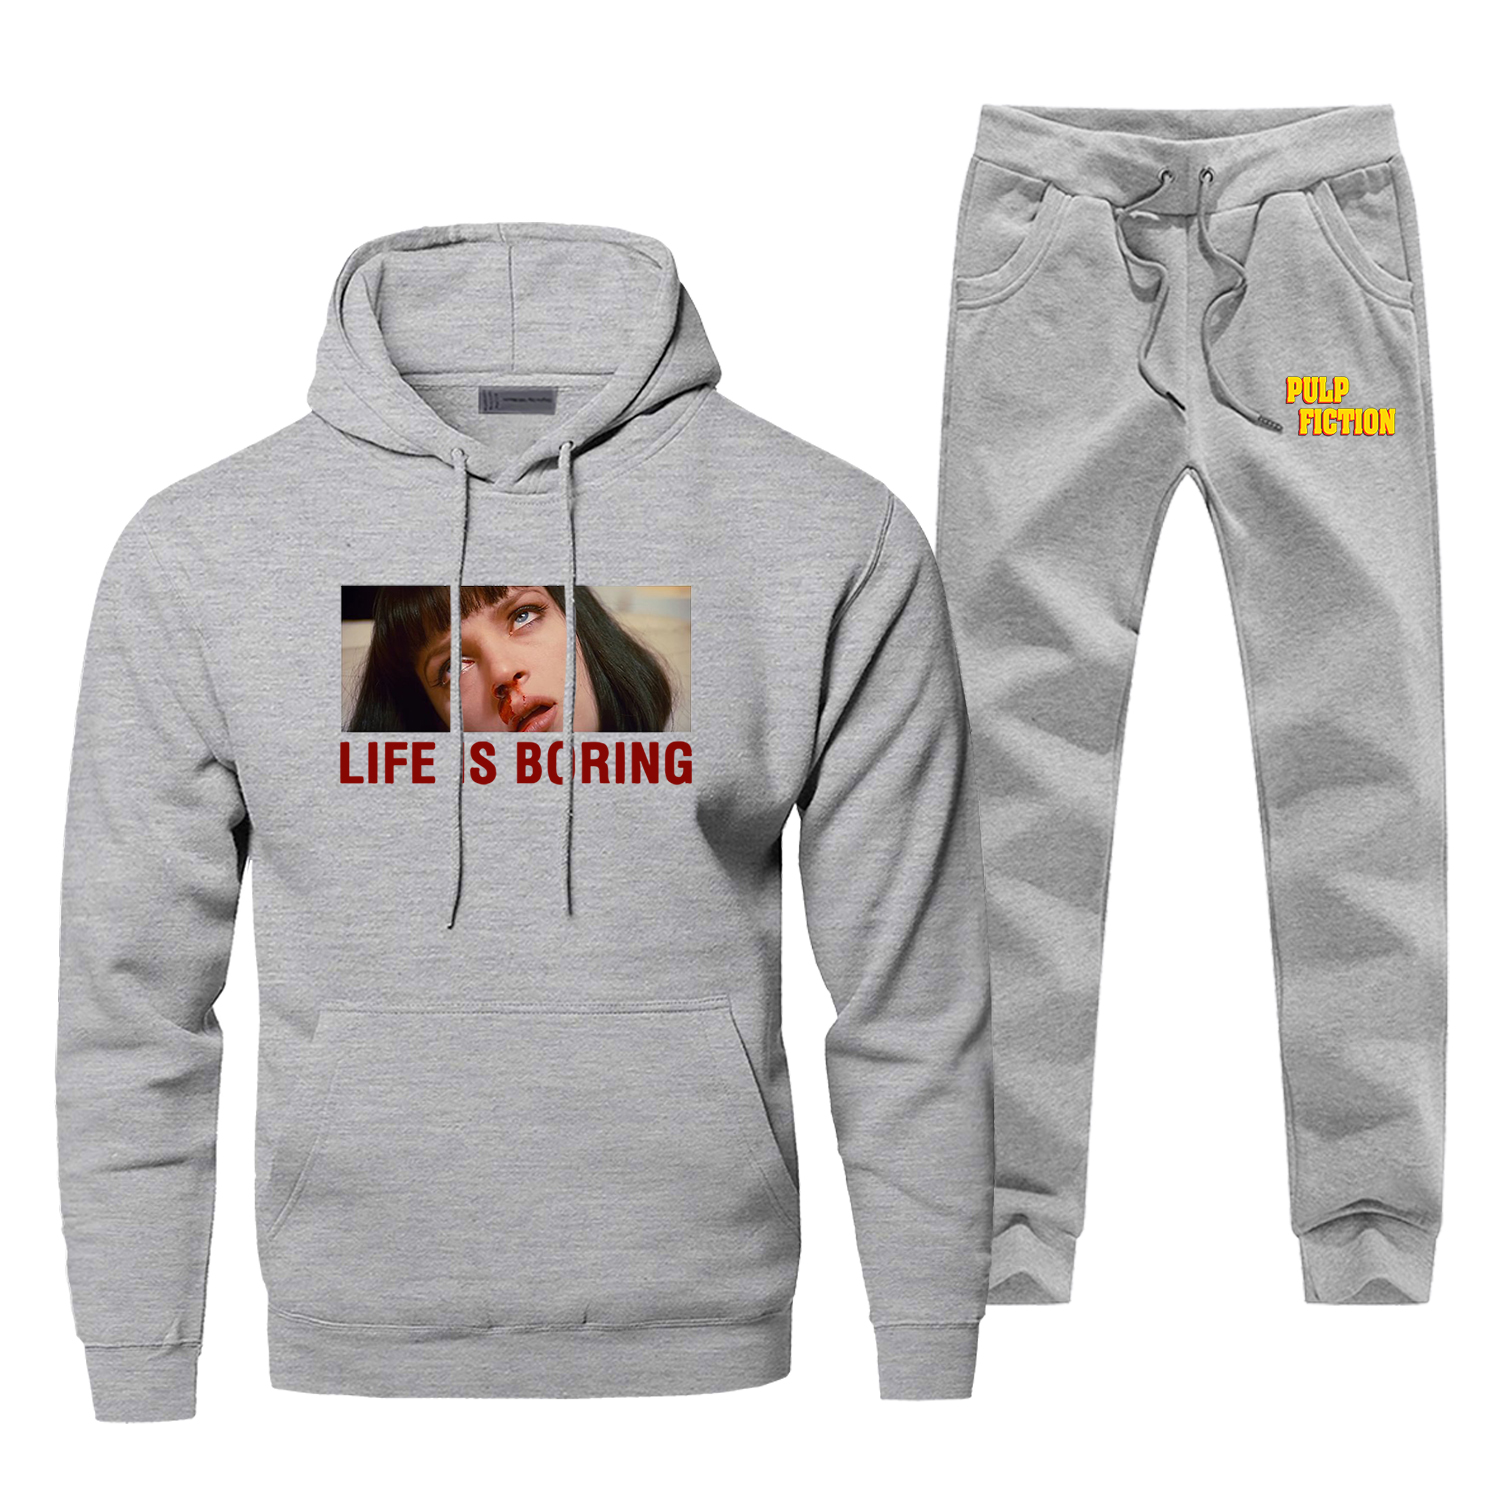 Leon Life Is Boring Hoodie Pants Set Men Sets Classic Movie Suit Hoody Sweatshirt Sweatpants Sportswear Pullover 2 PCS Tracksuit